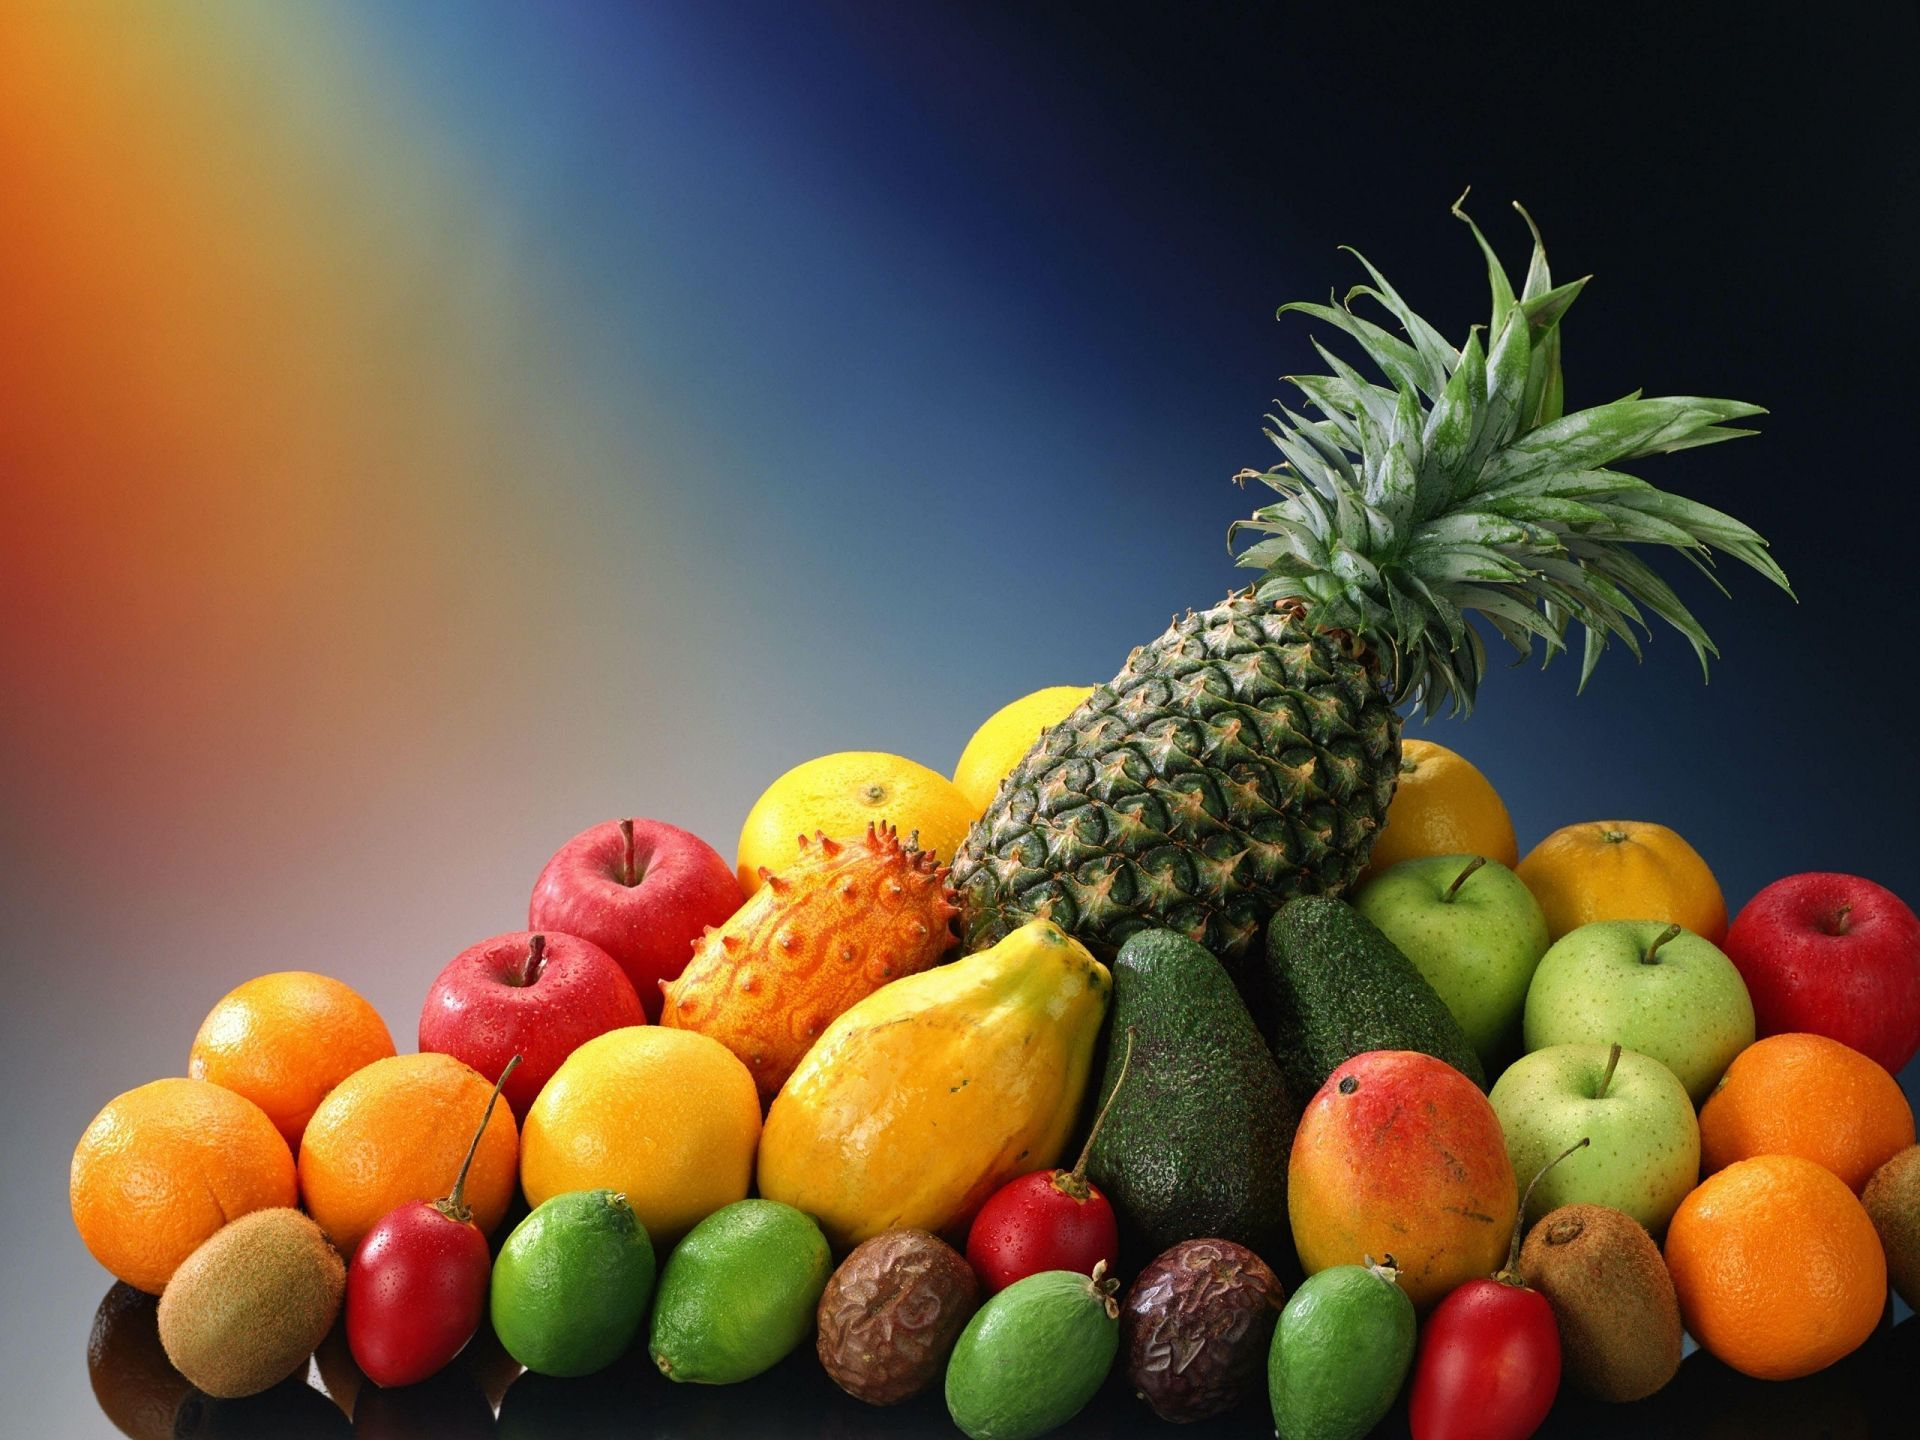 All the fruits wallpaper - Fruits Wallpapers For Desktop Hd Wallpaper